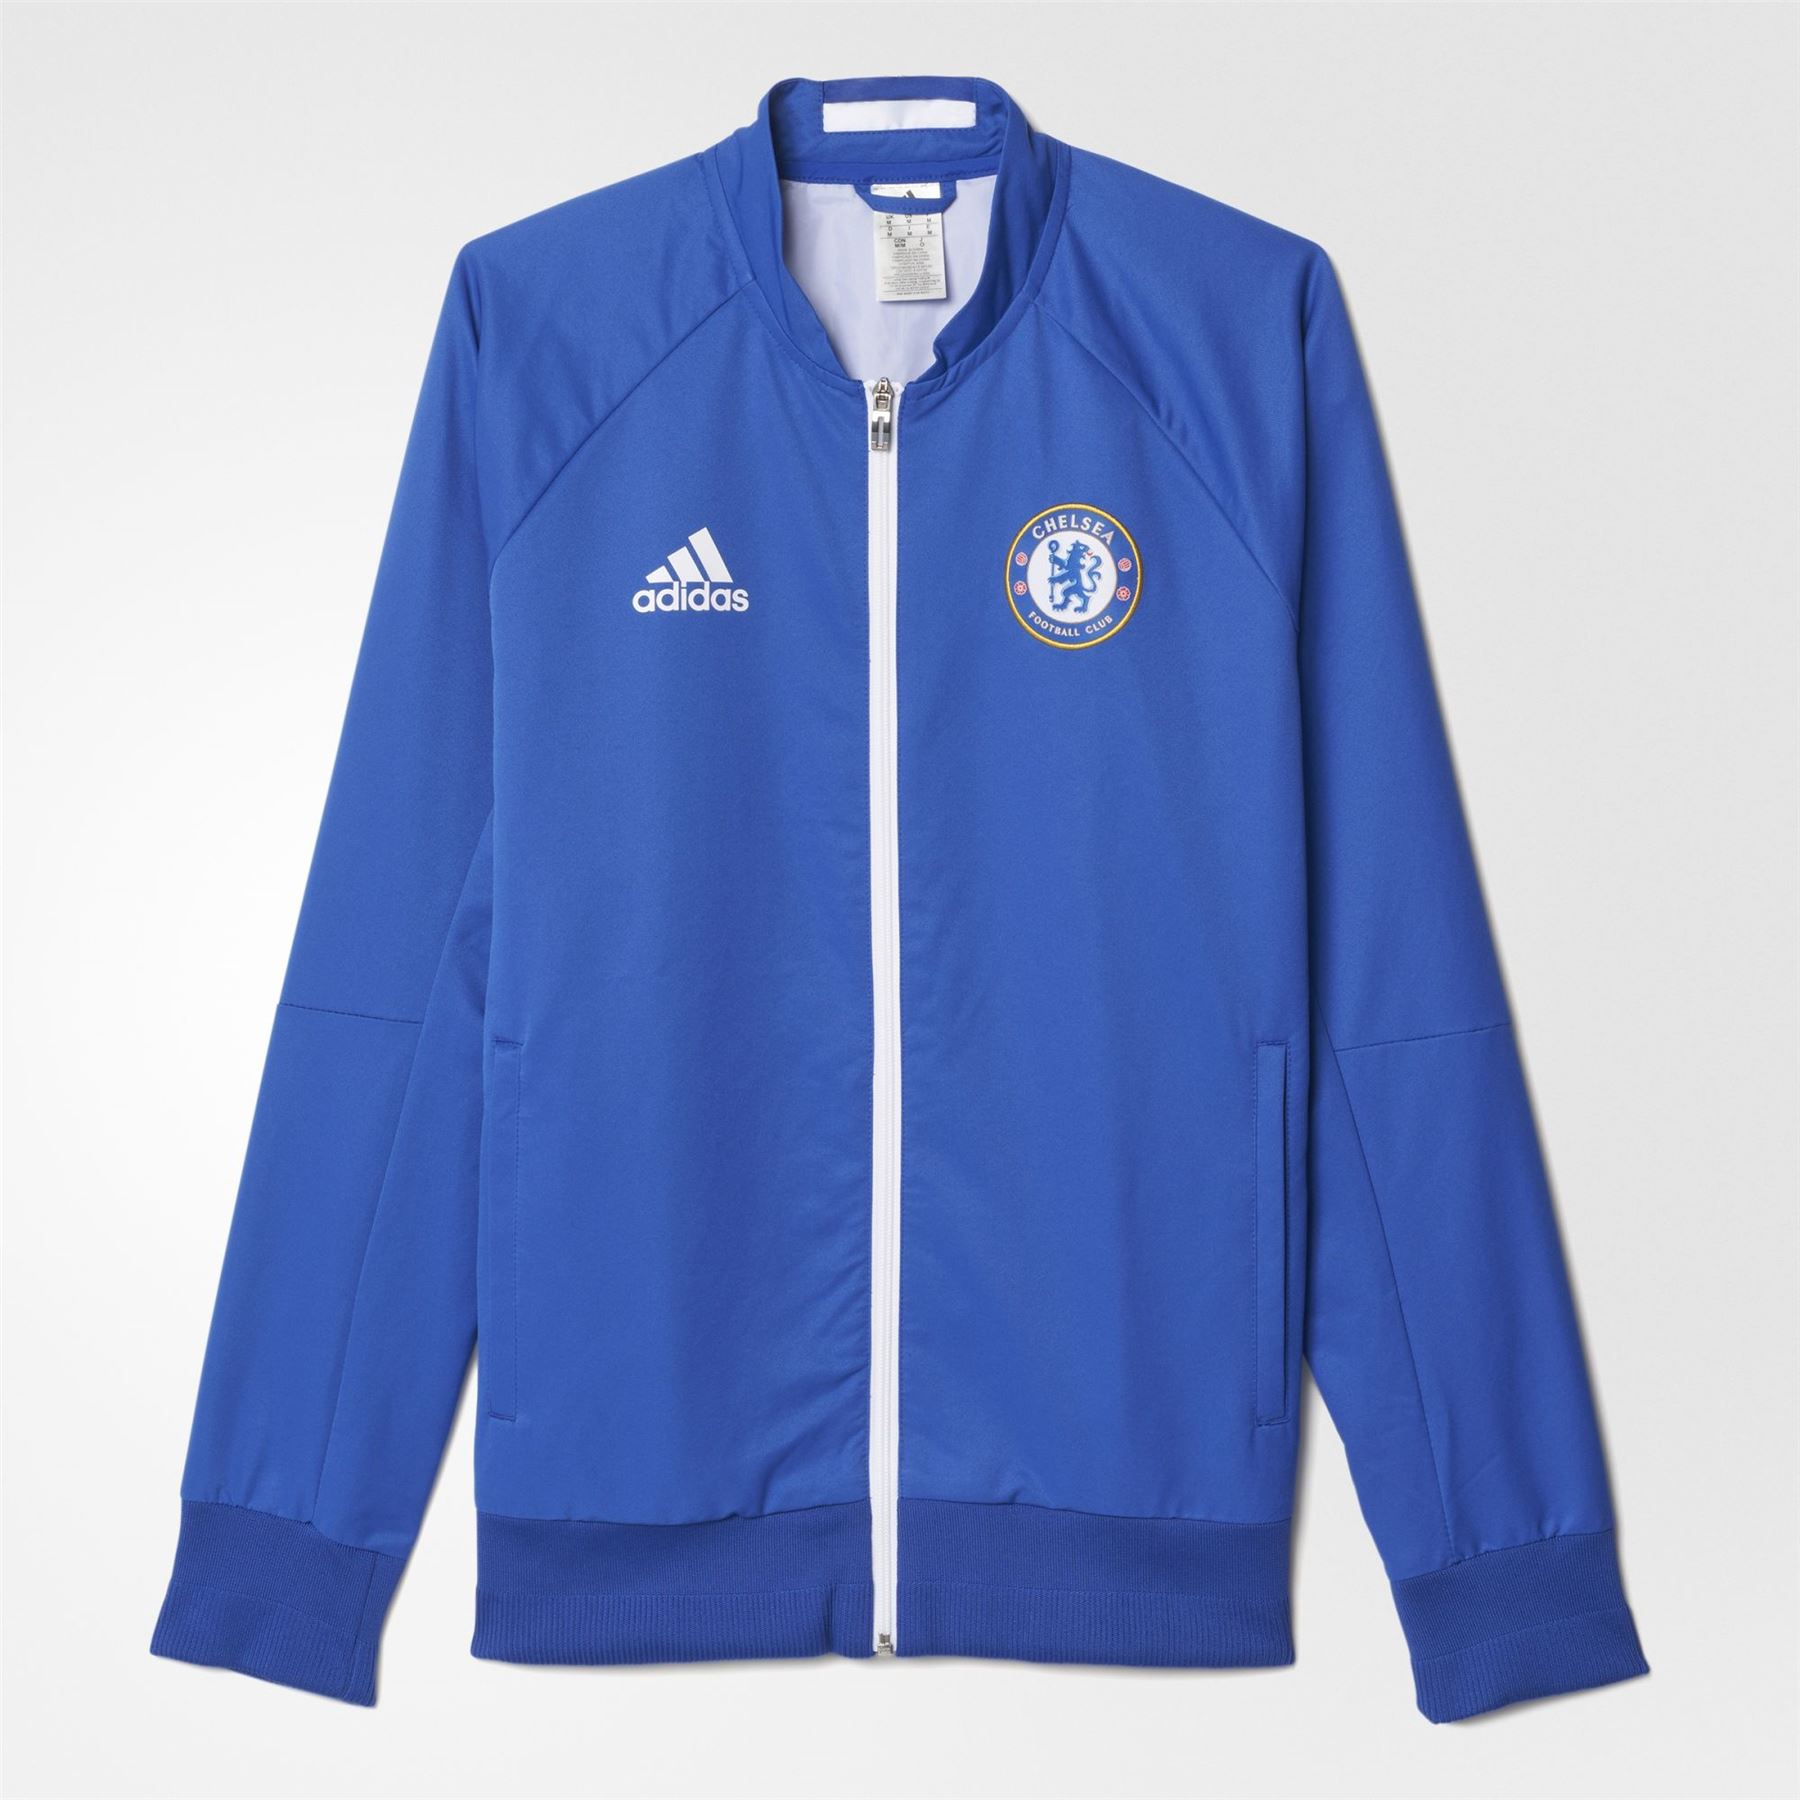 86d9b8b70 adidas CHELSEA FC ANTHEM JACKET BLUE MEN S FOOTBALL PREMIERSHIP CHAMPIONS  NEW